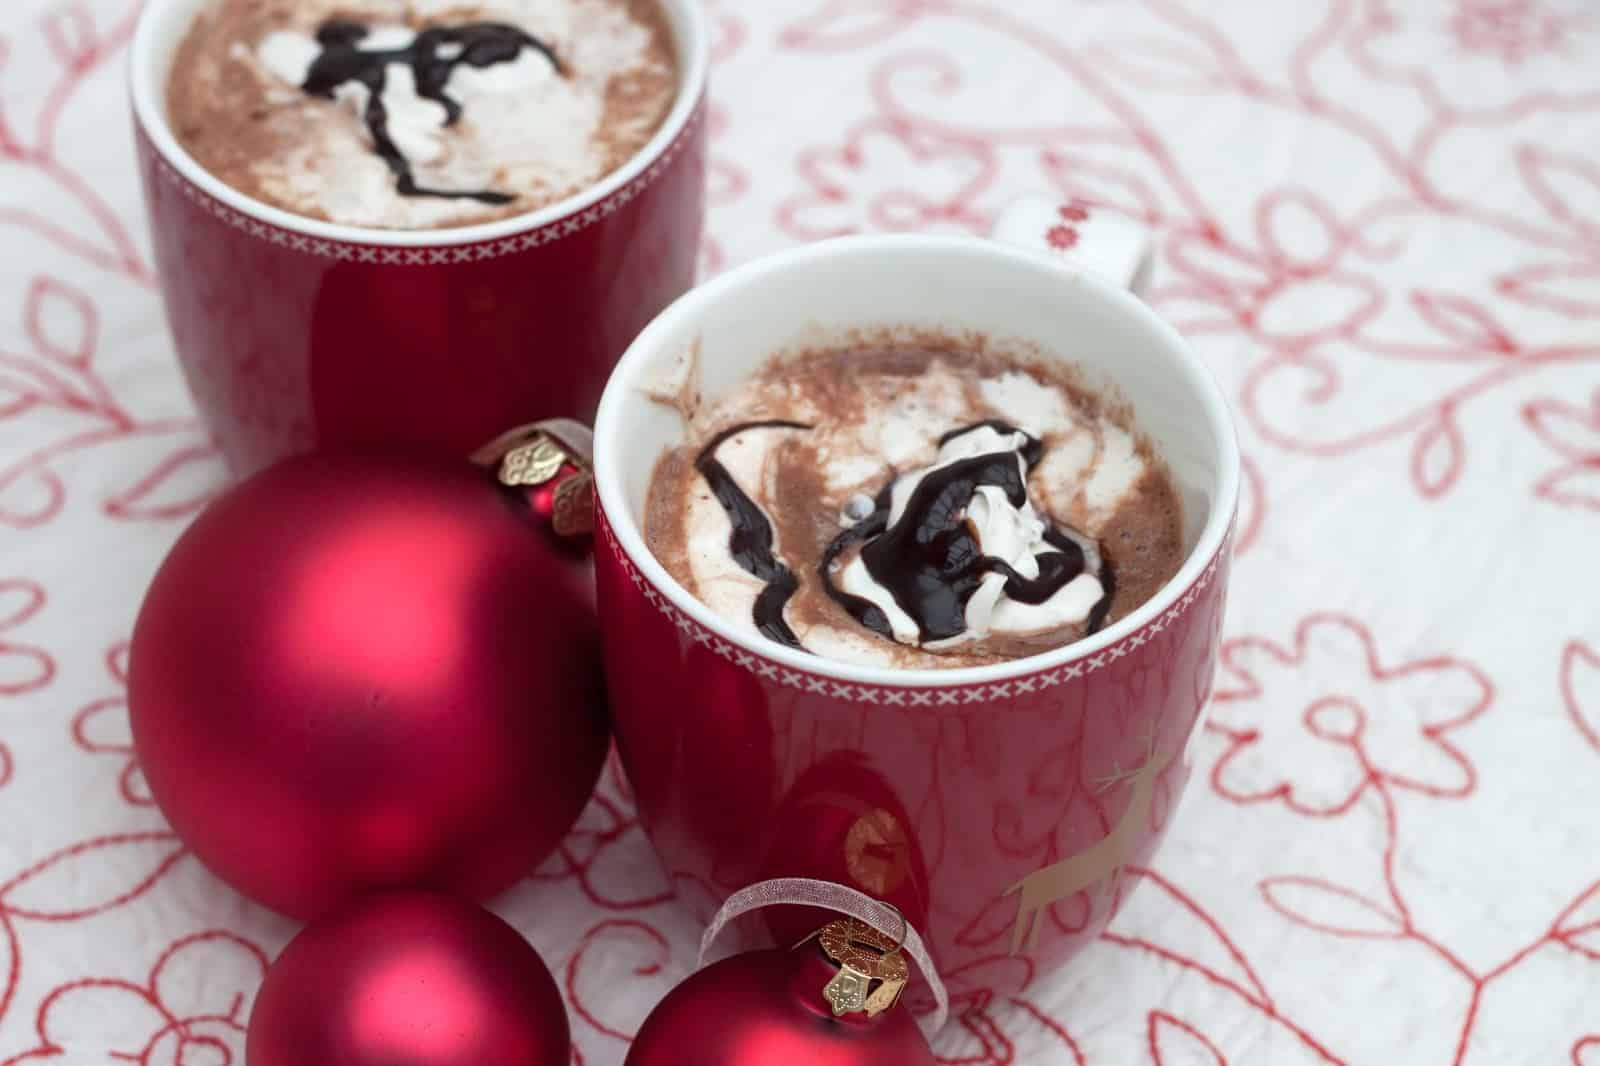 Sweet Cute Wallpapers For Laptop 15 Deliciously Unique Hot Chocolate Recipes For The Holidays